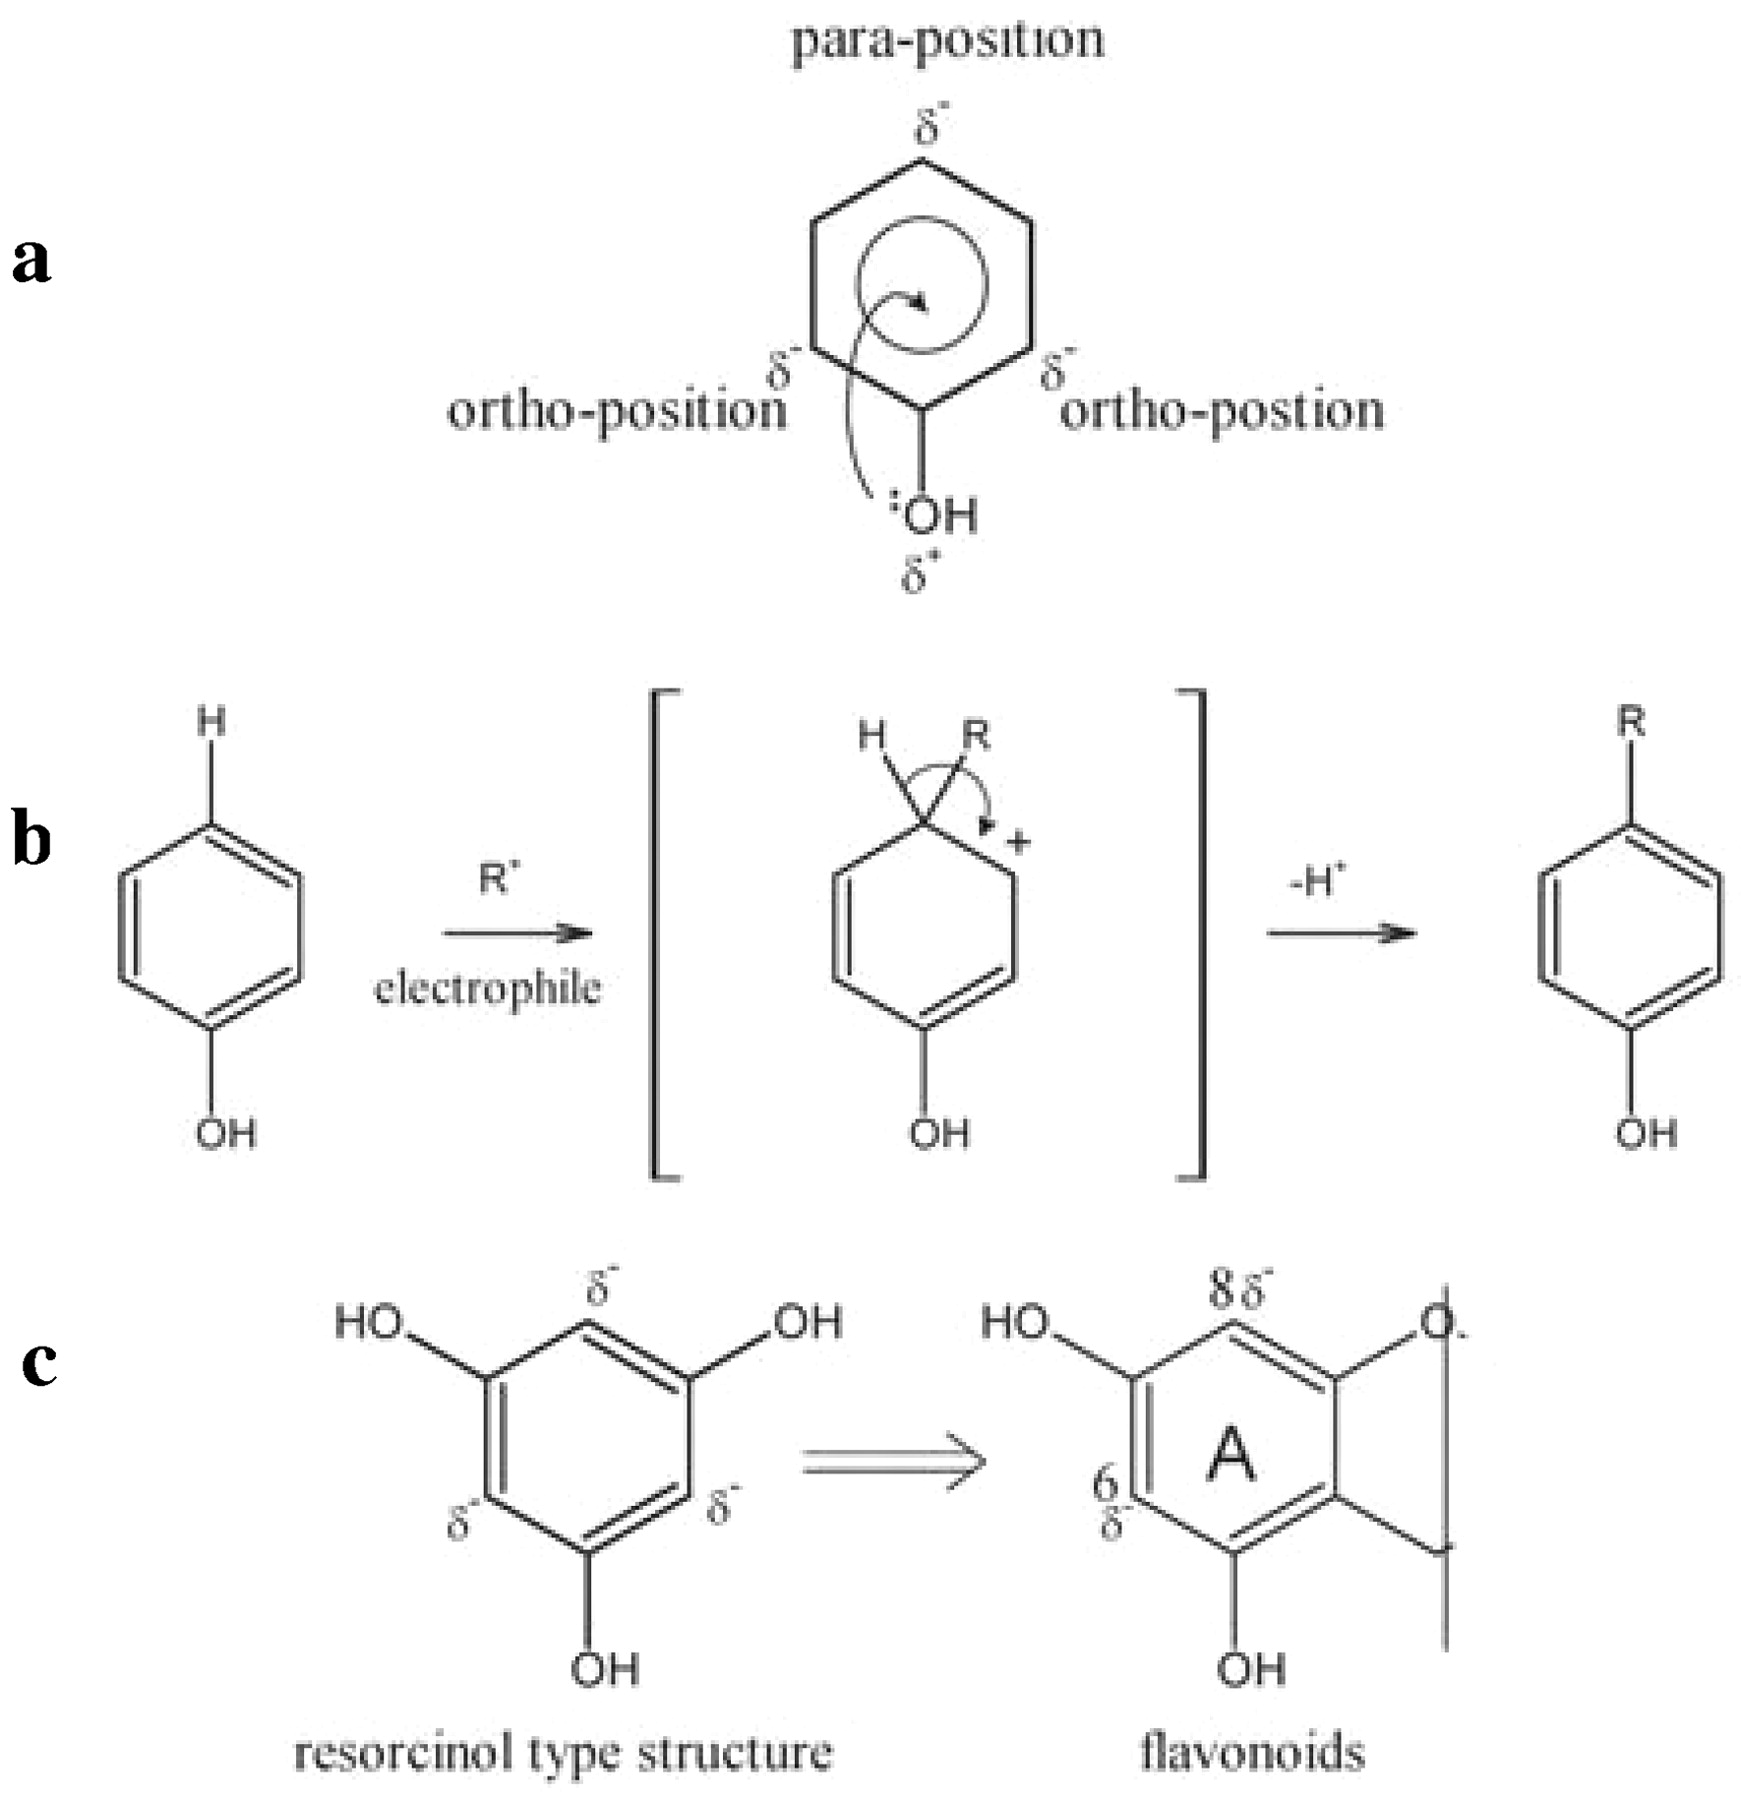 Phenolic Reactions During Winemaking And Aging